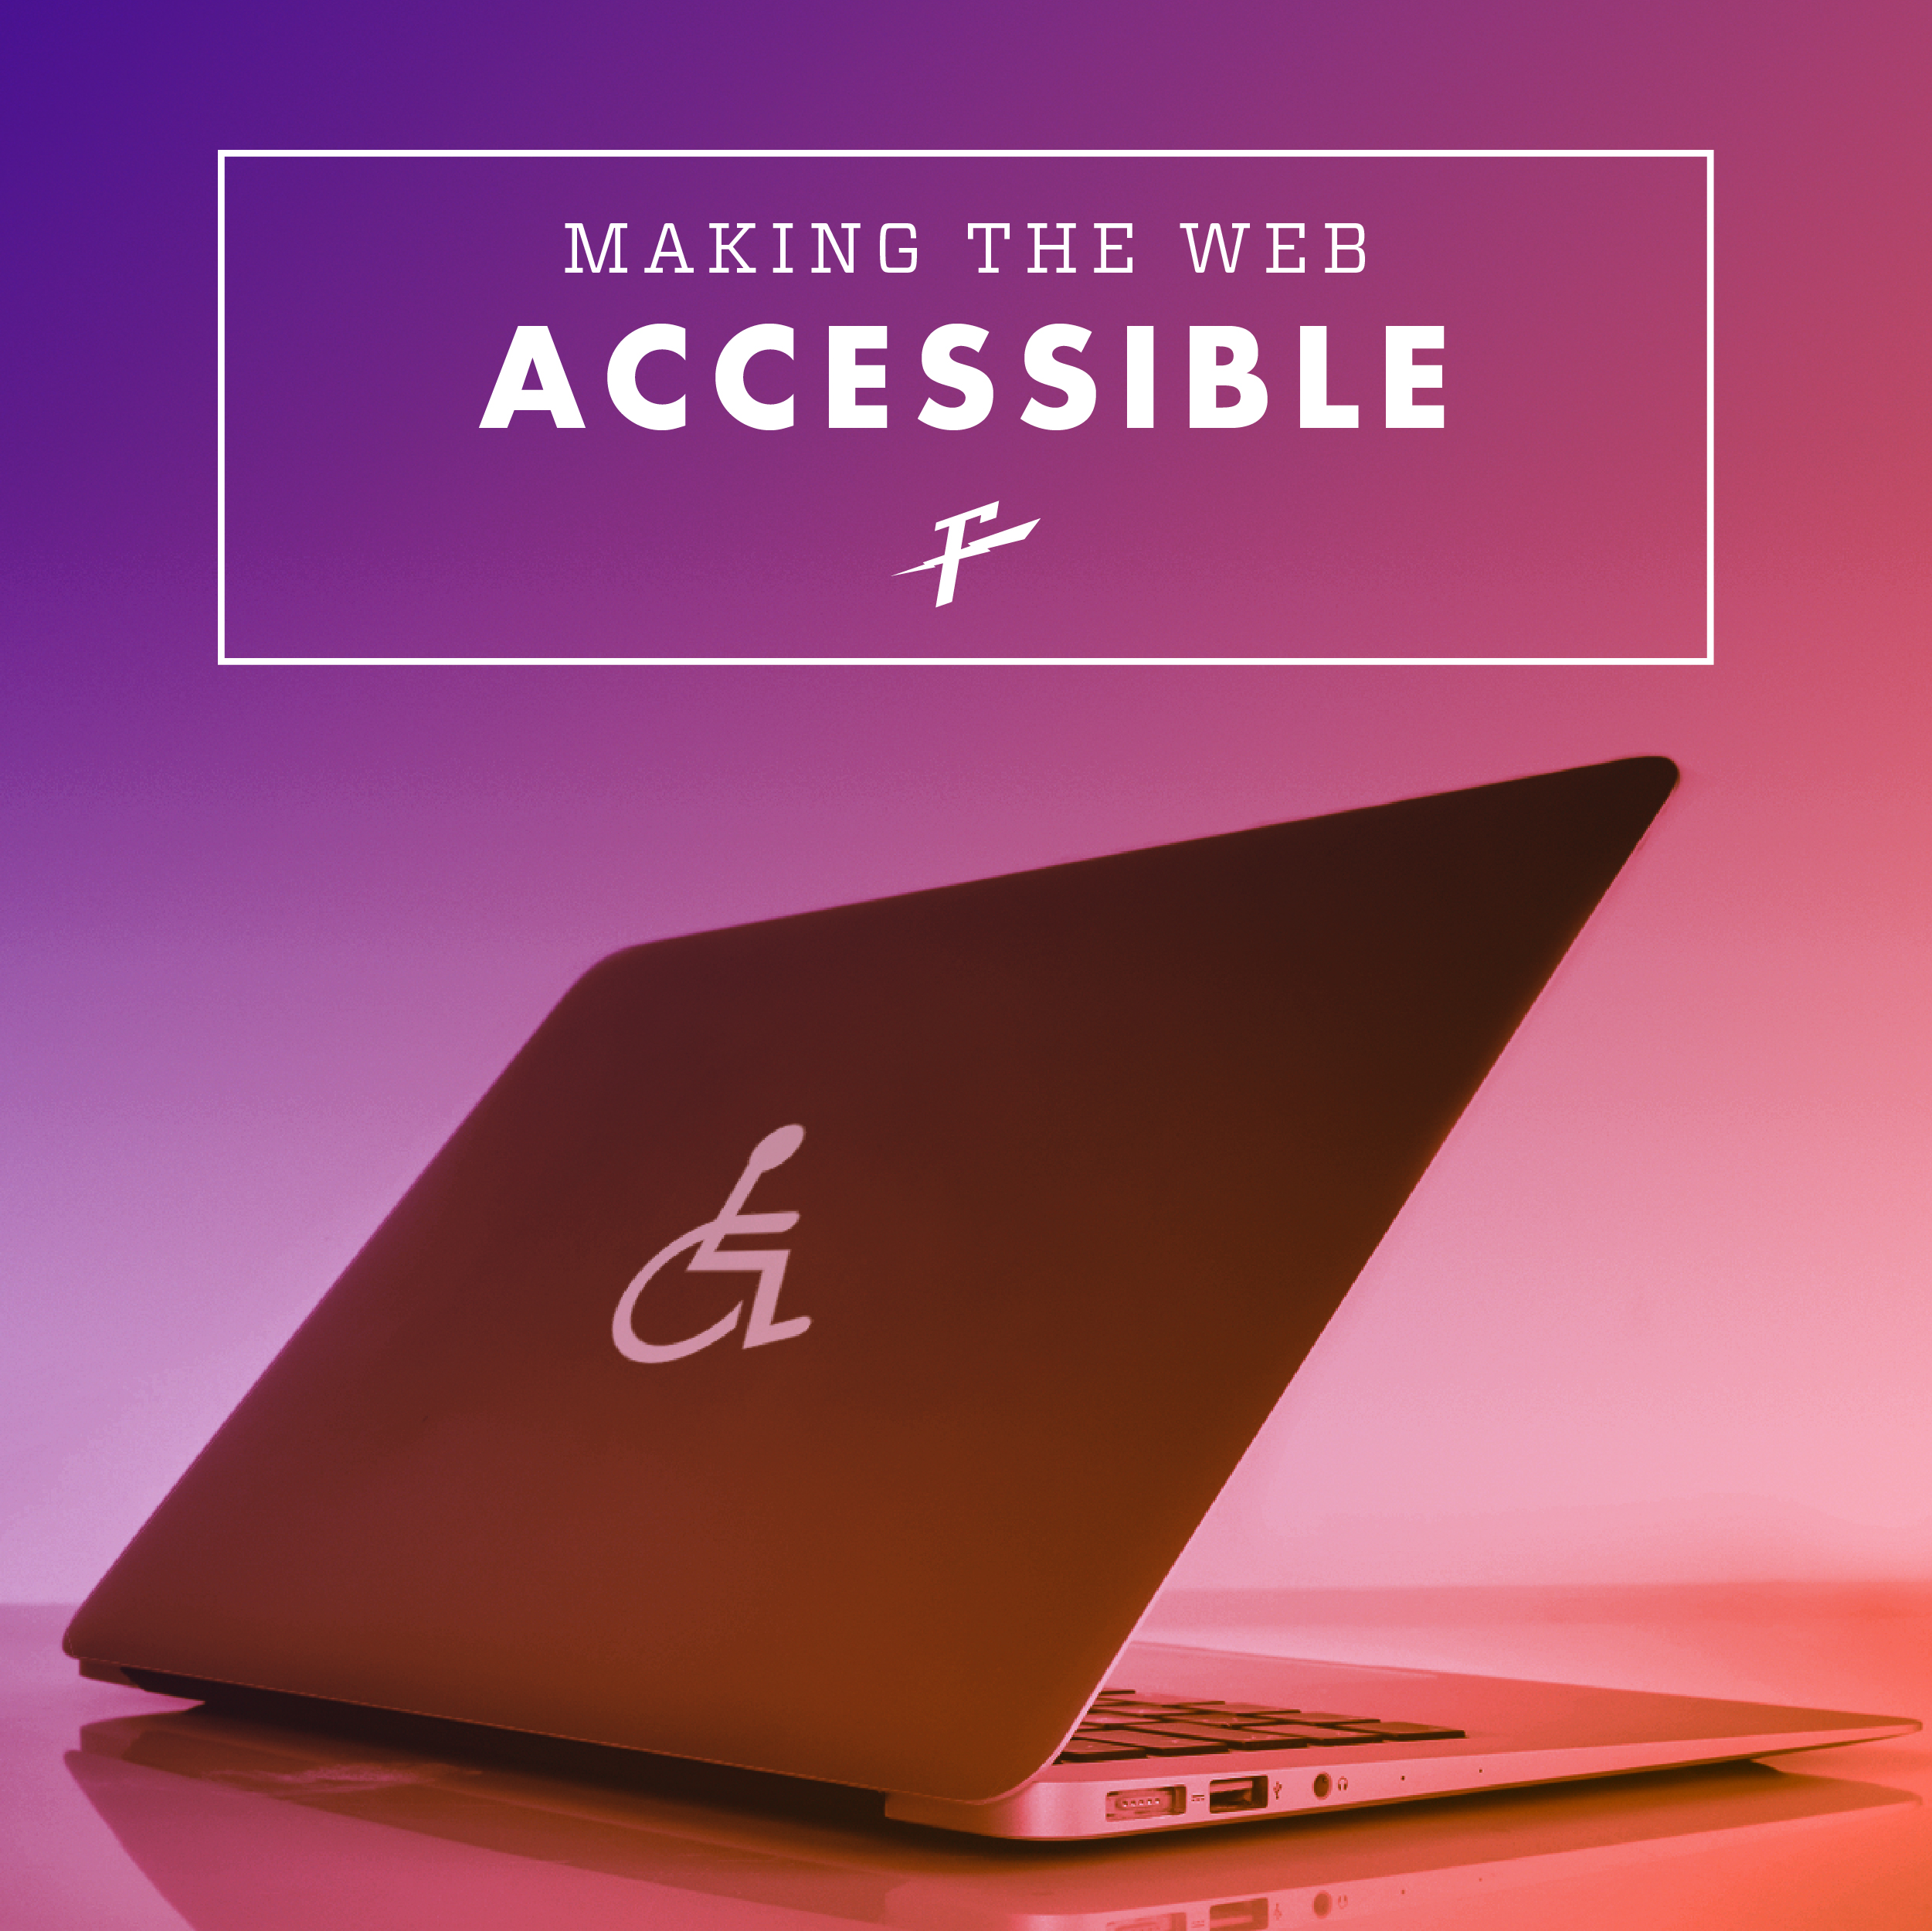 Making The Web Available For Everyone graphic with laptop